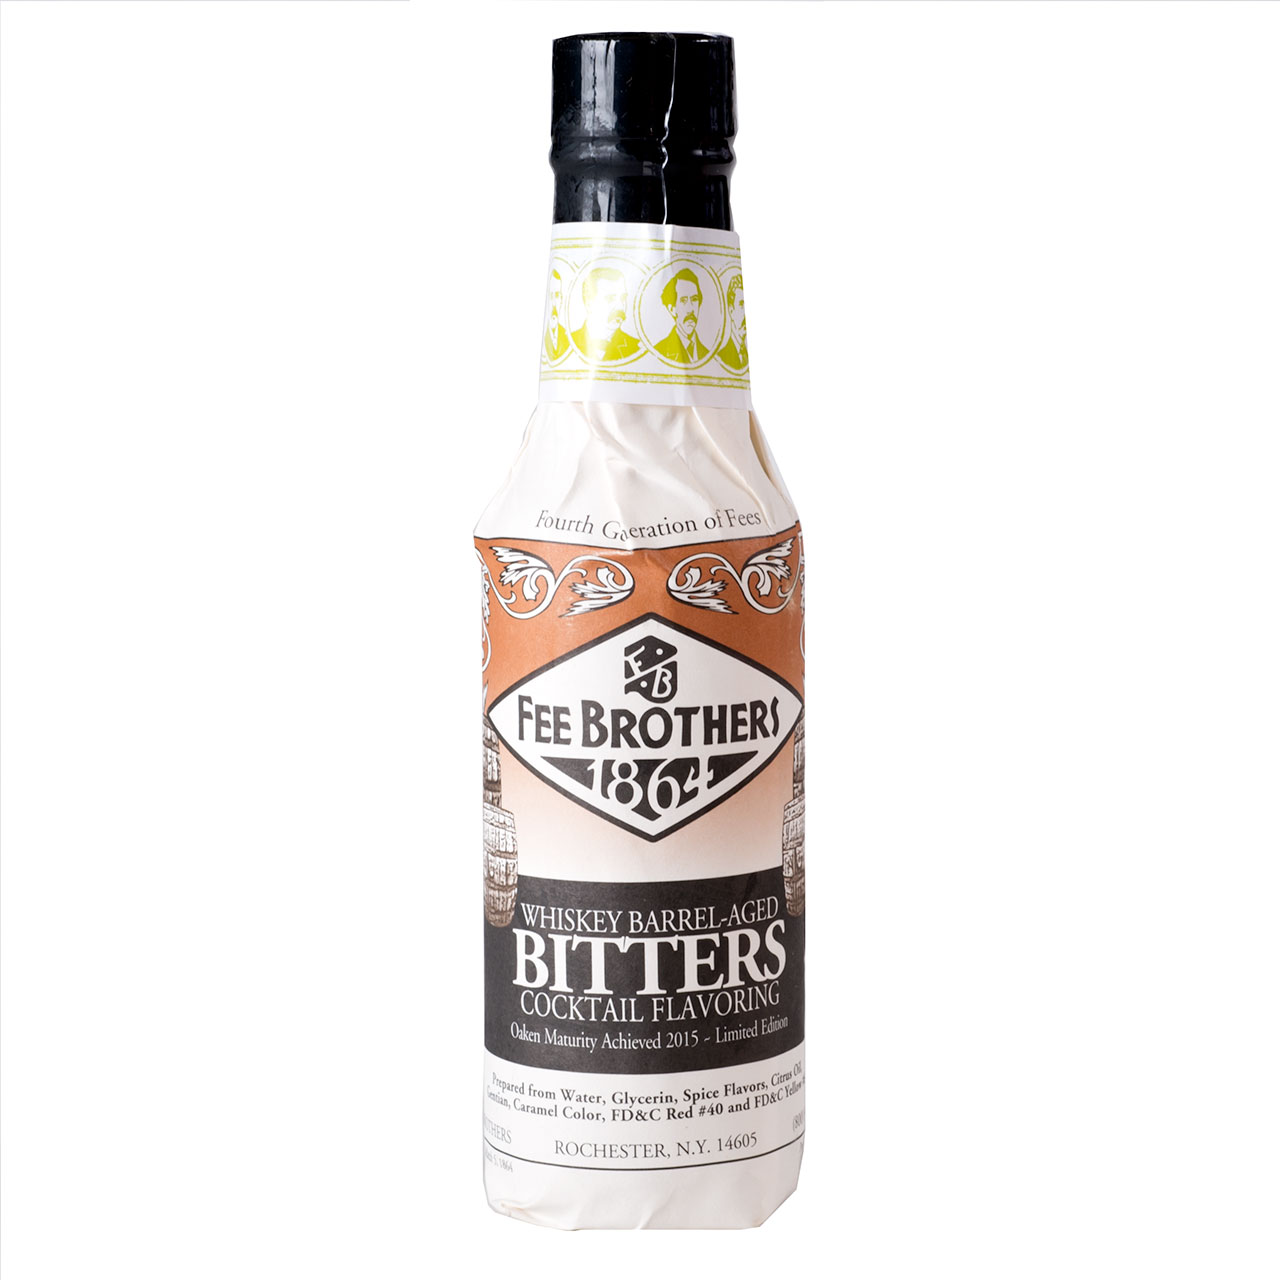 Fee Brothers - Whiskey Barrel Aged Bitters